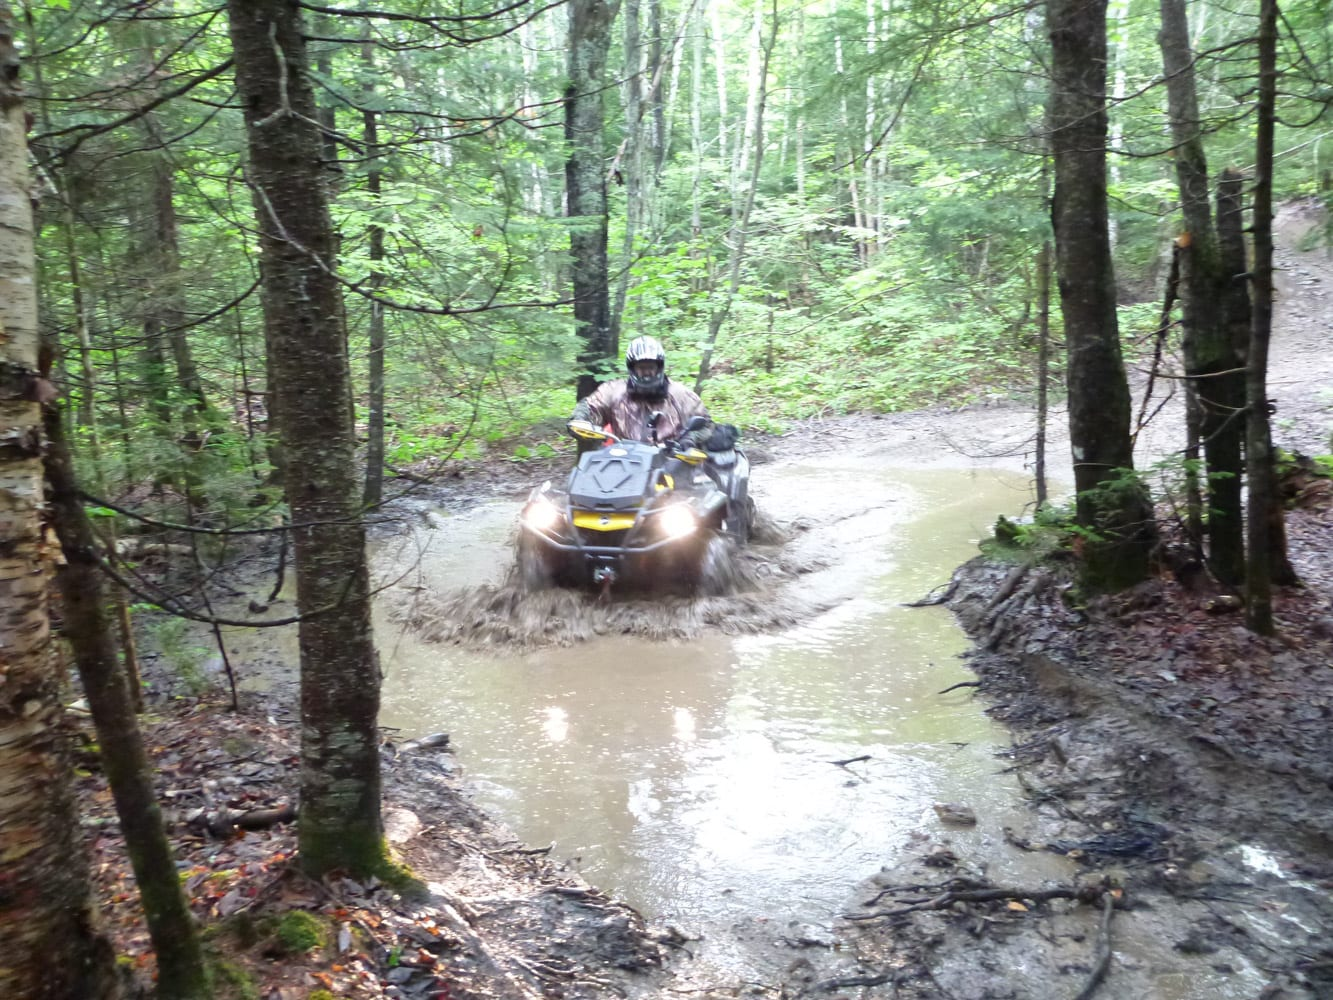 The suffering of ATV clubs